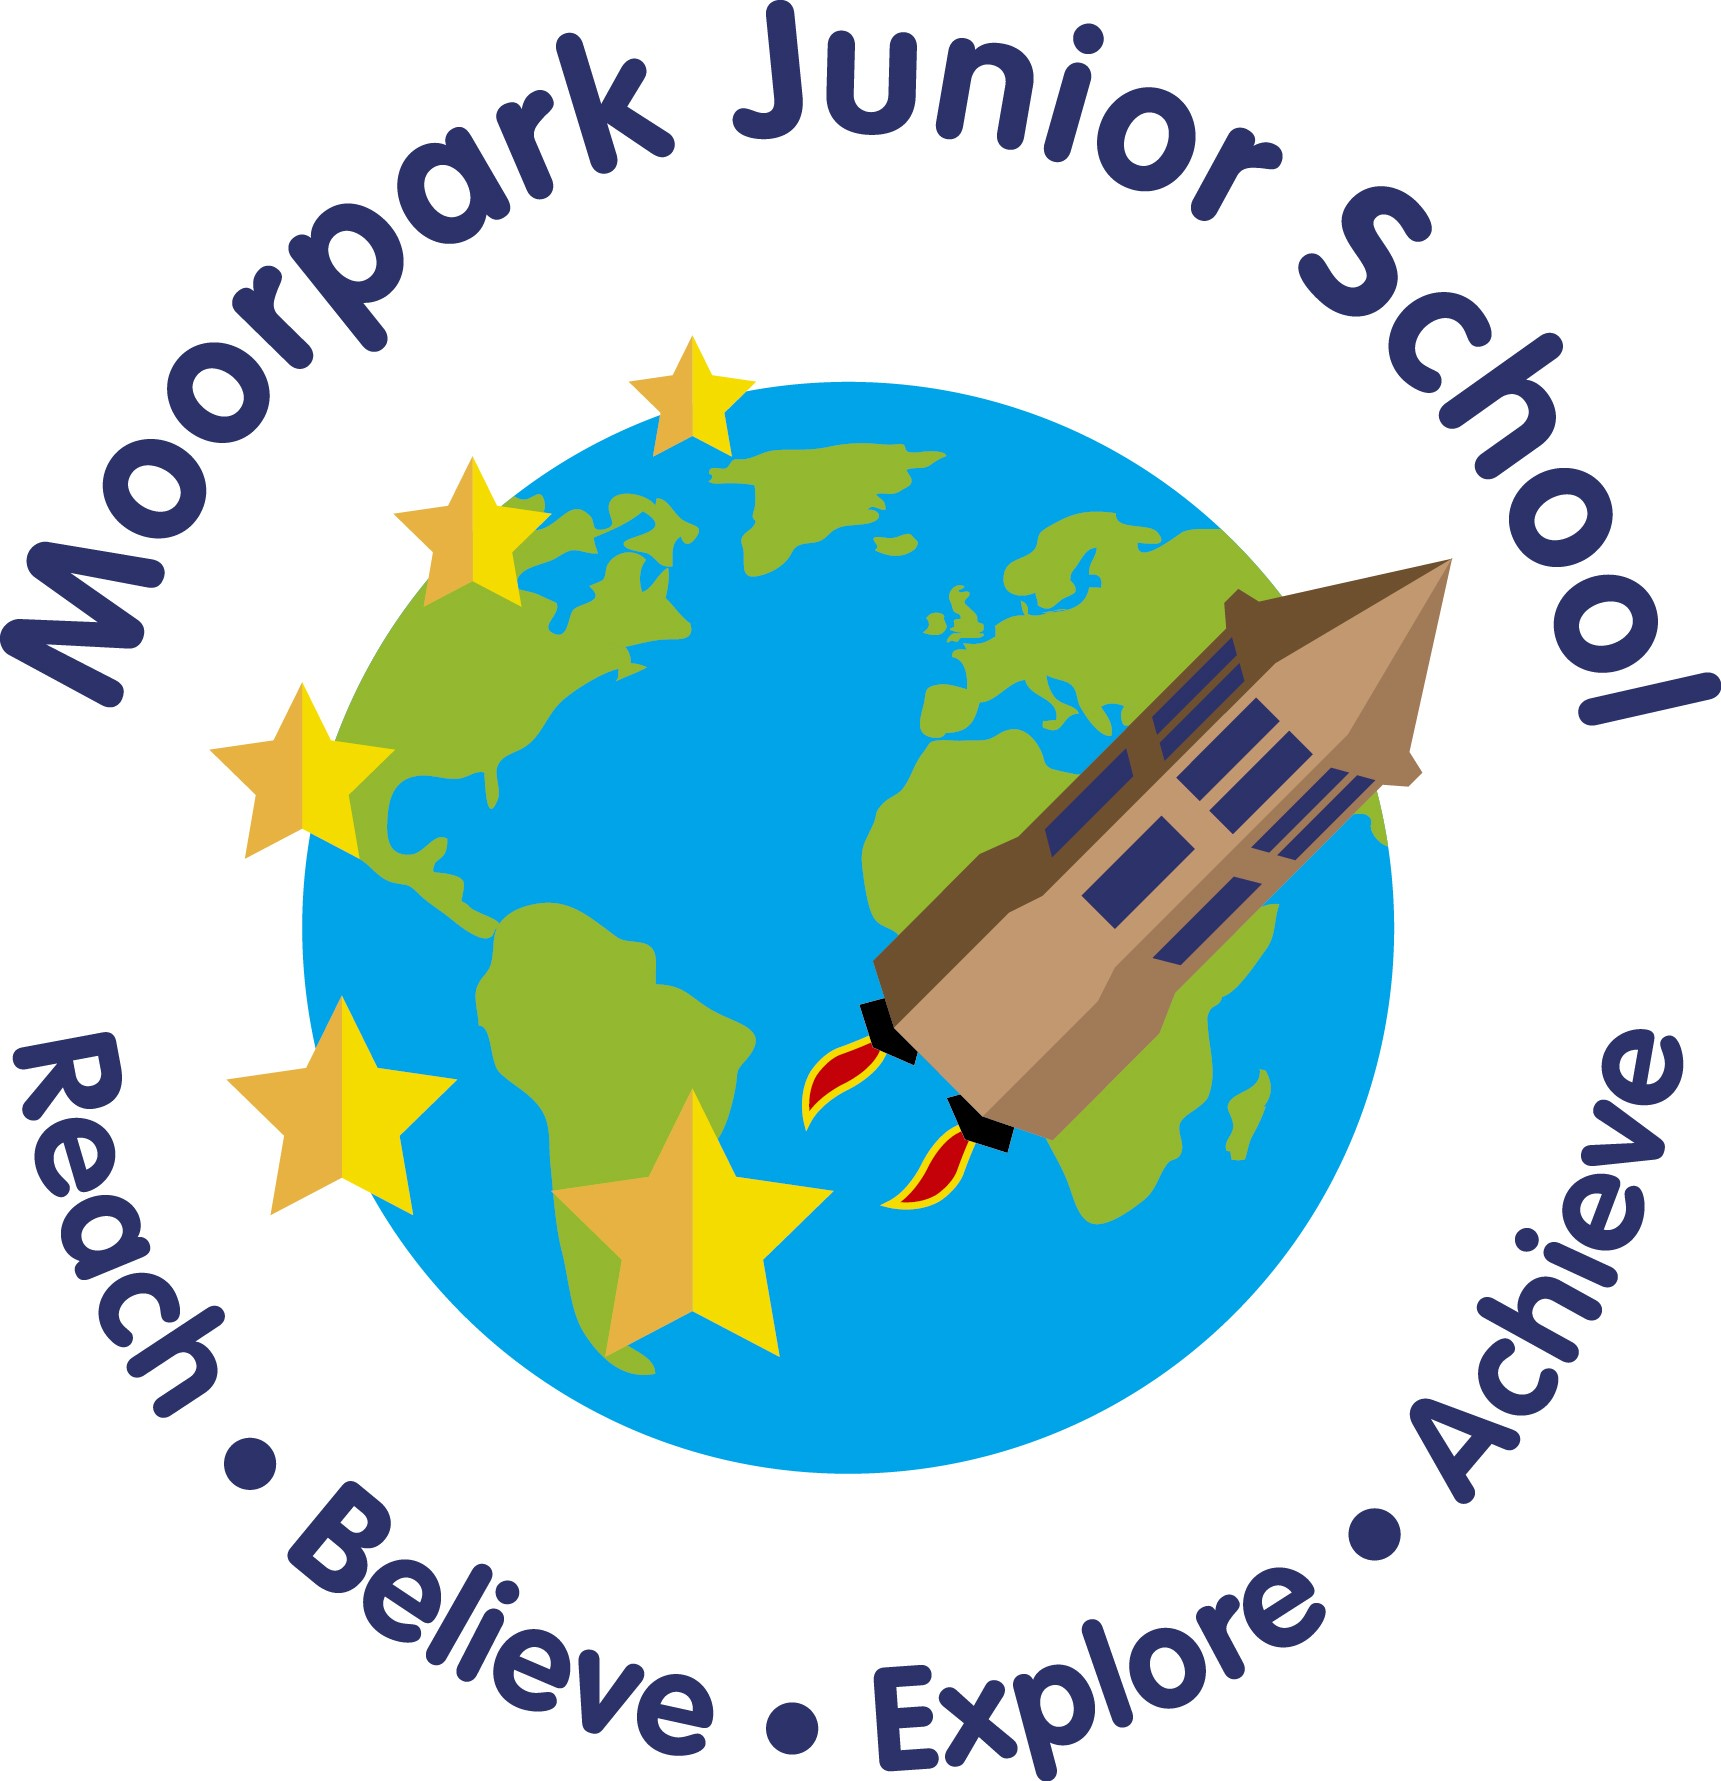 Moorpark Junior School